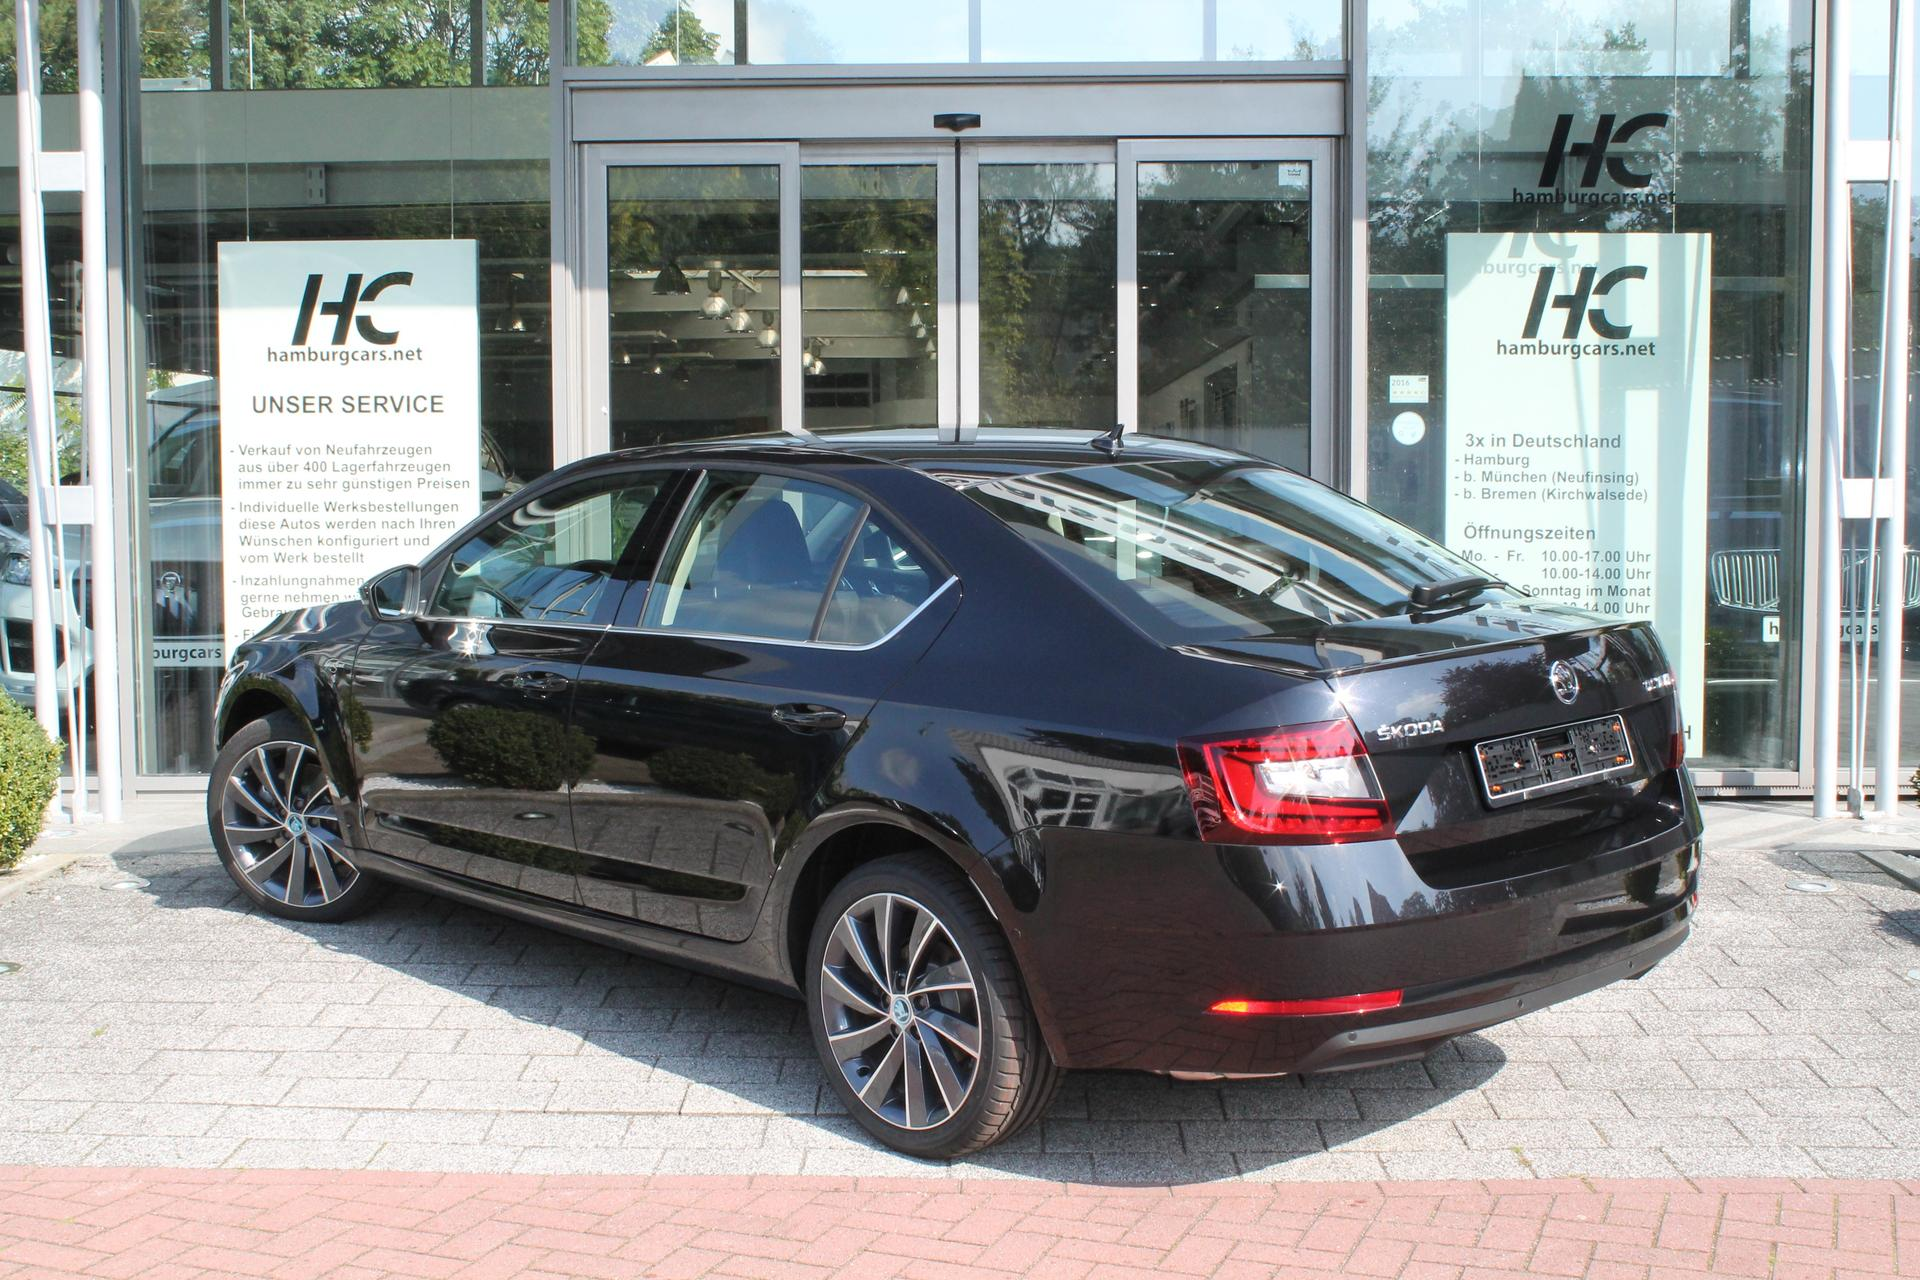 skoda octavia l k 2 0 tsi 140kw 190 ps dsg reimport eu. Black Bedroom Furniture Sets. Home Design Ideas